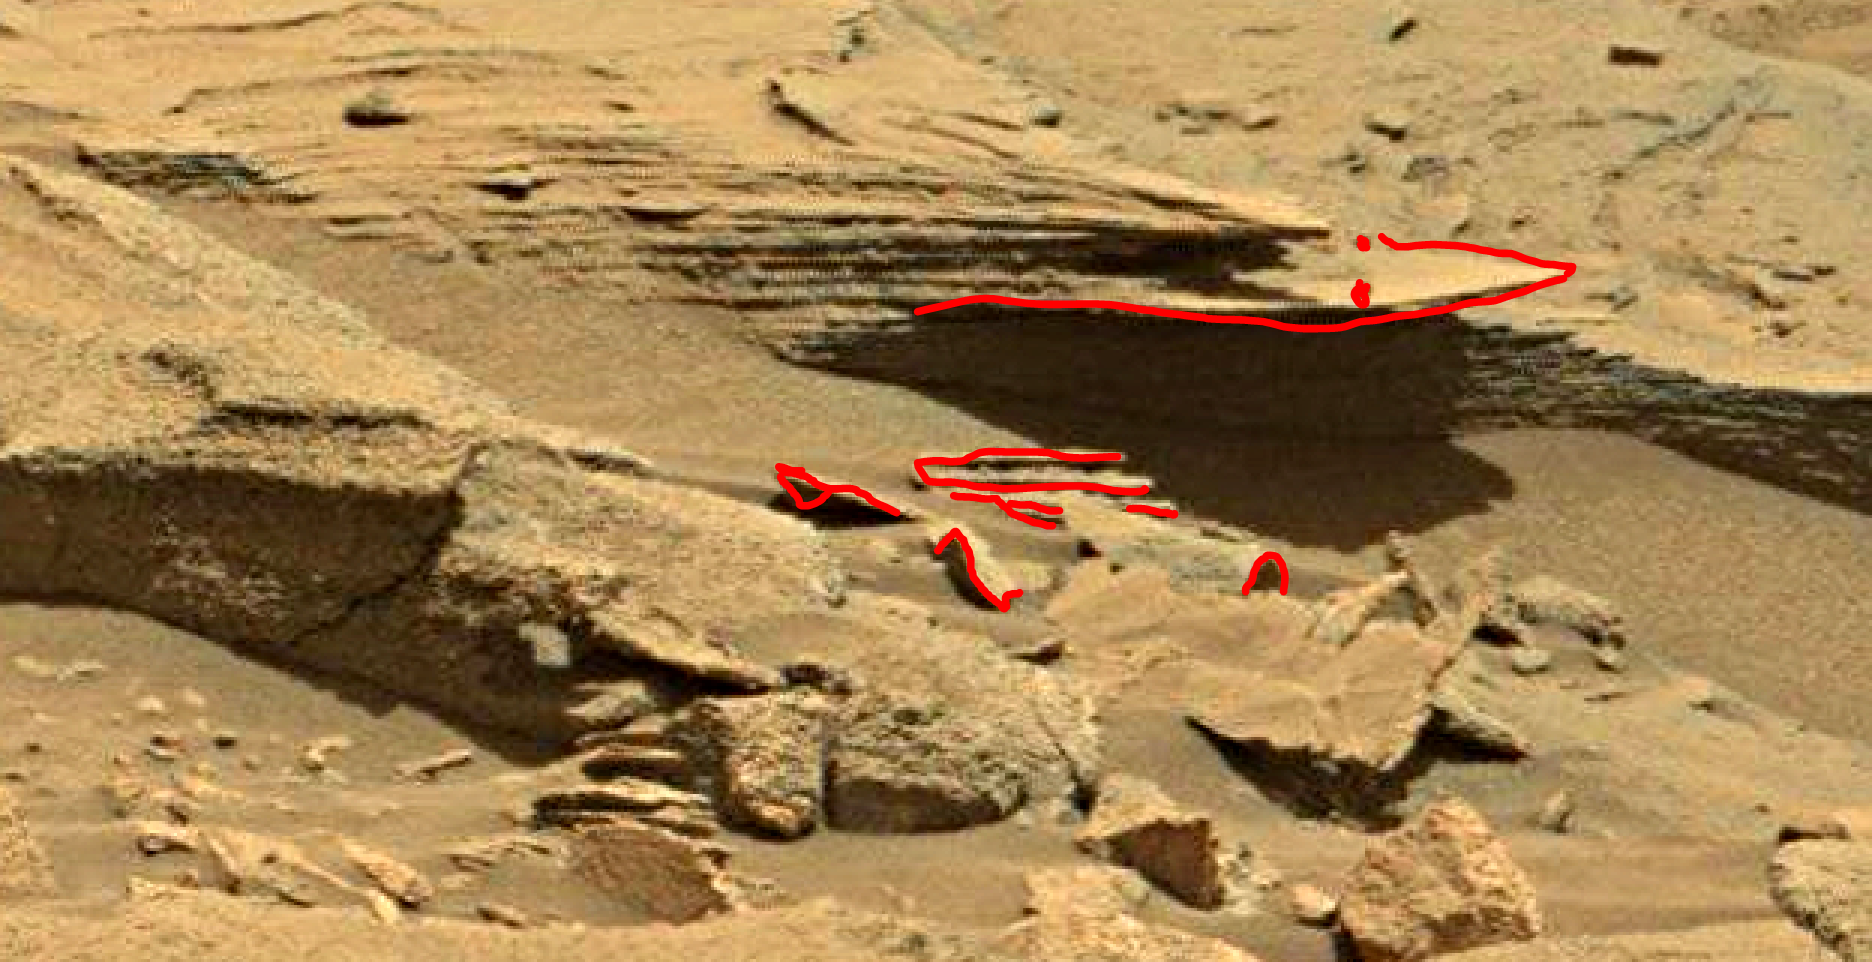 mars sol 1346 anomaly-artifacts 10a was life on mars